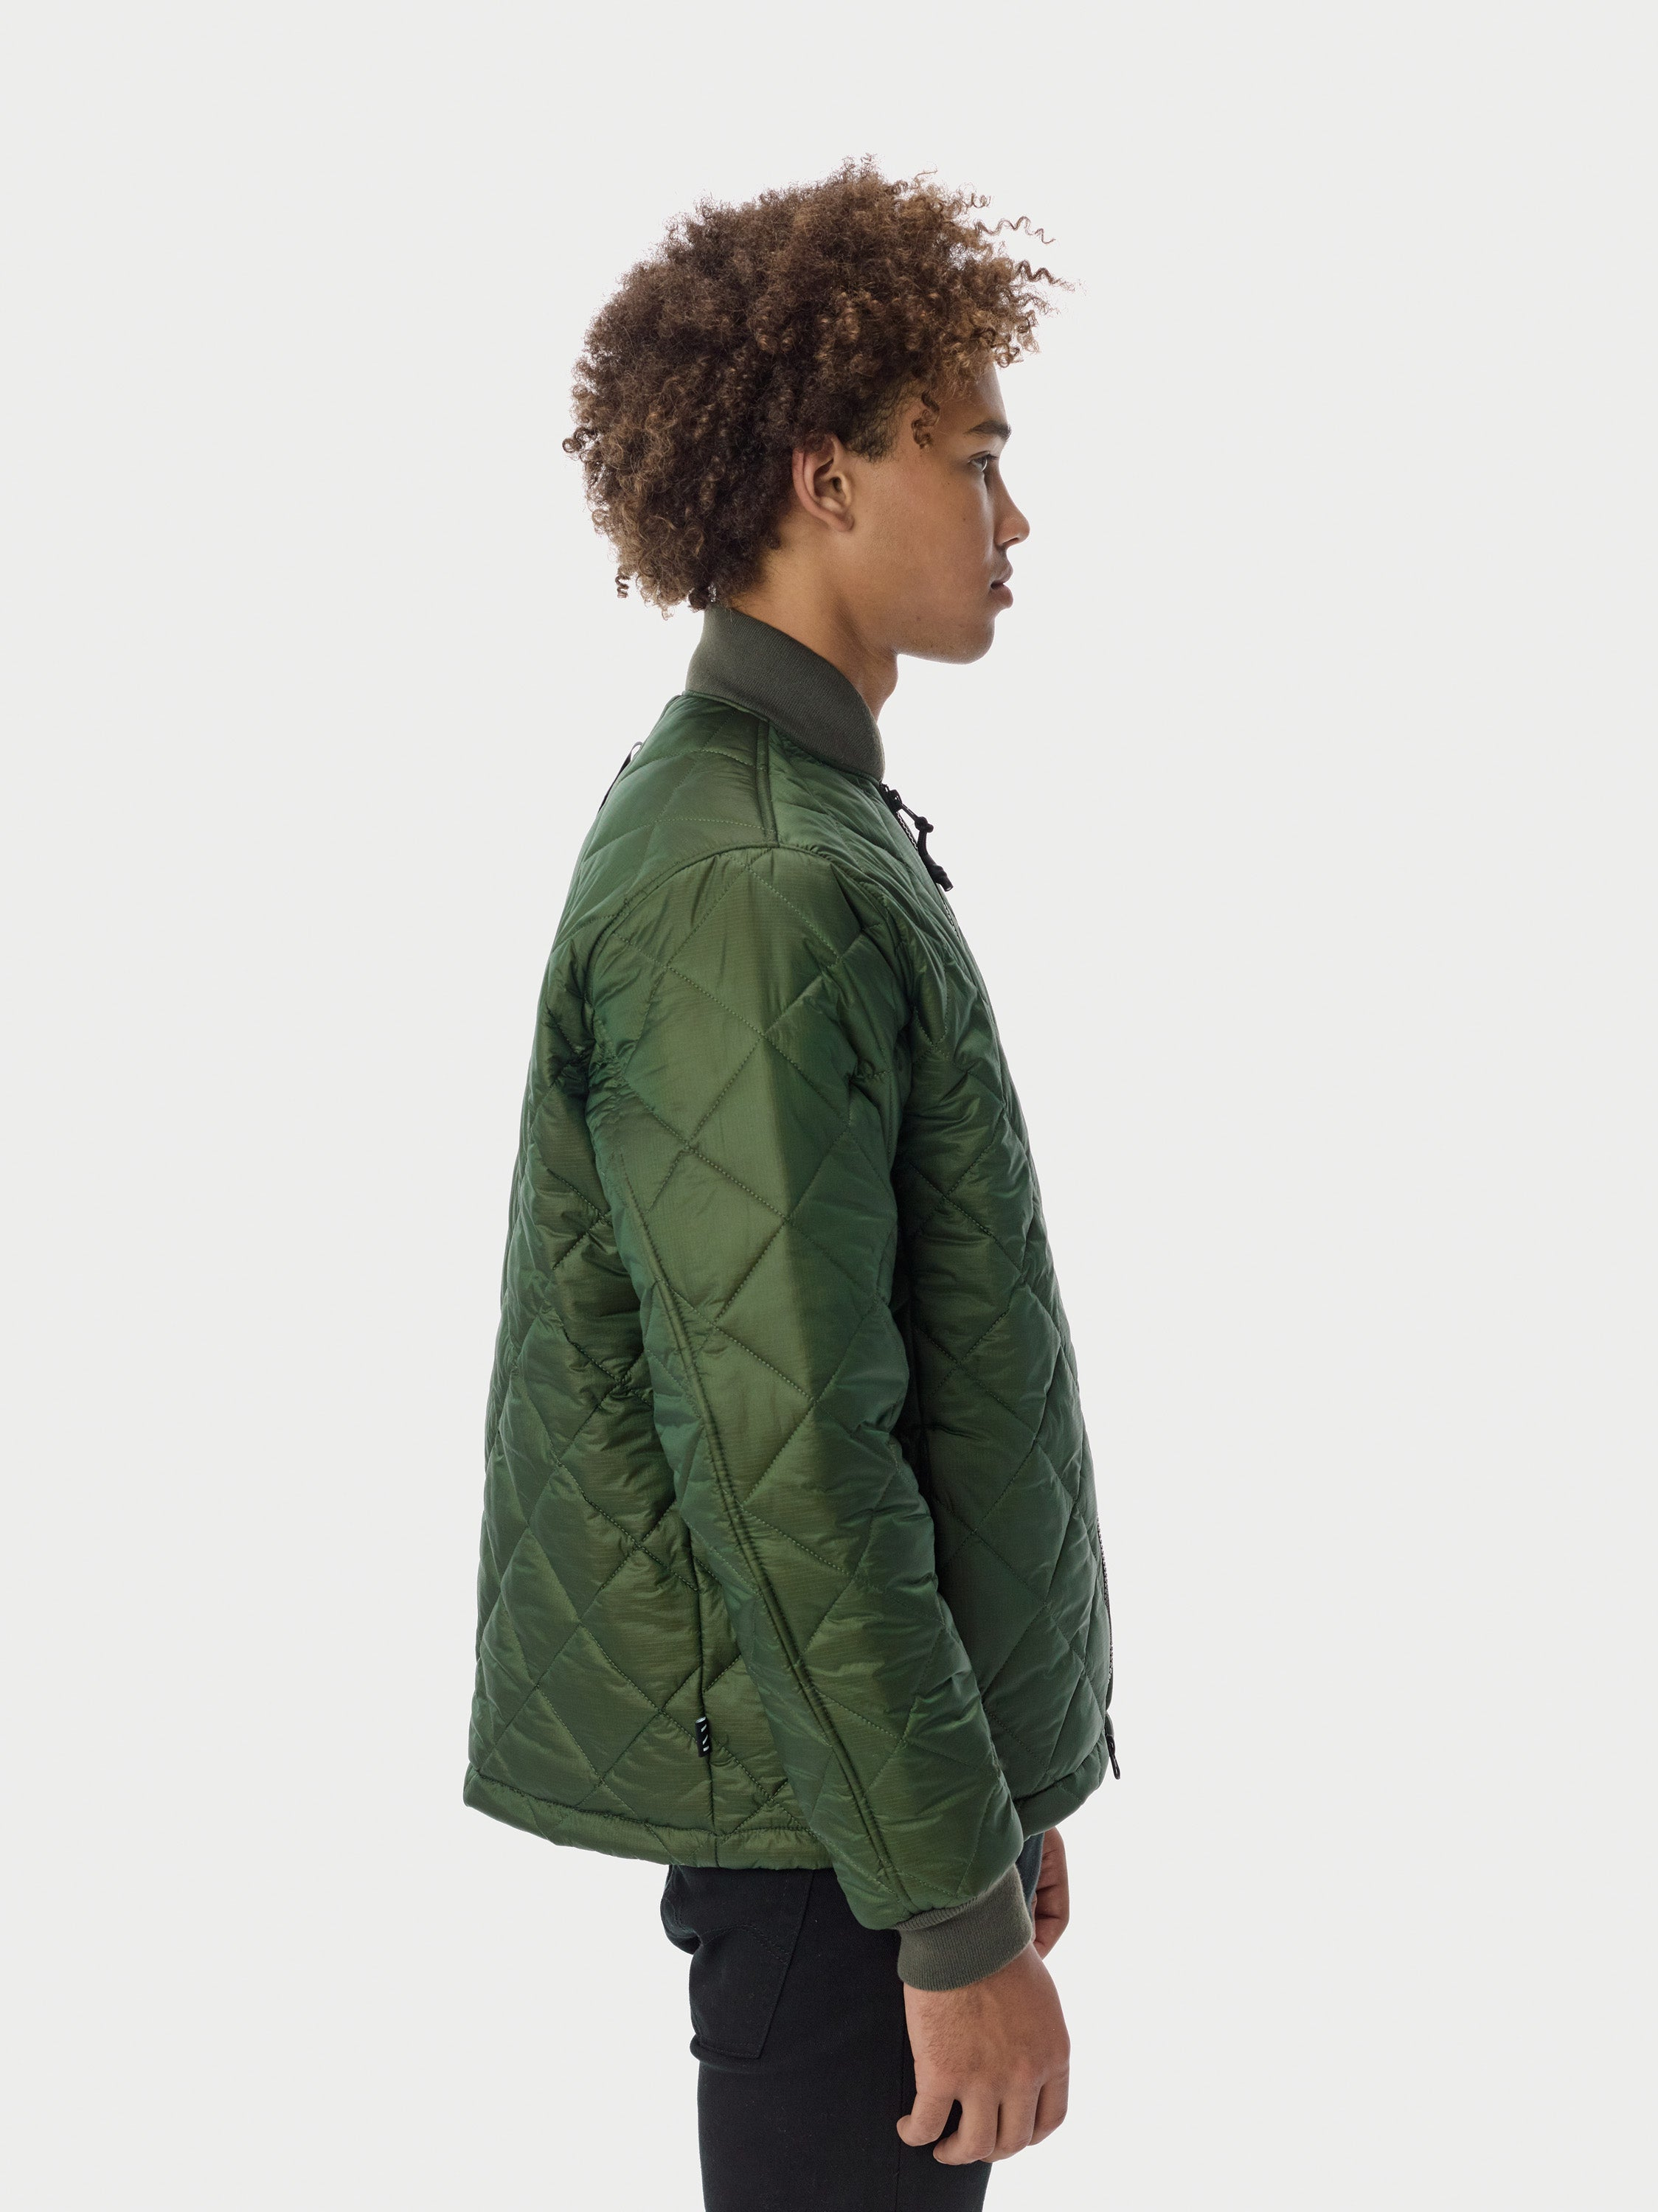 Quilted Through Quilted Bomber - Olive [bomber_Vandal], [The Very Warm], [The Very Warm]